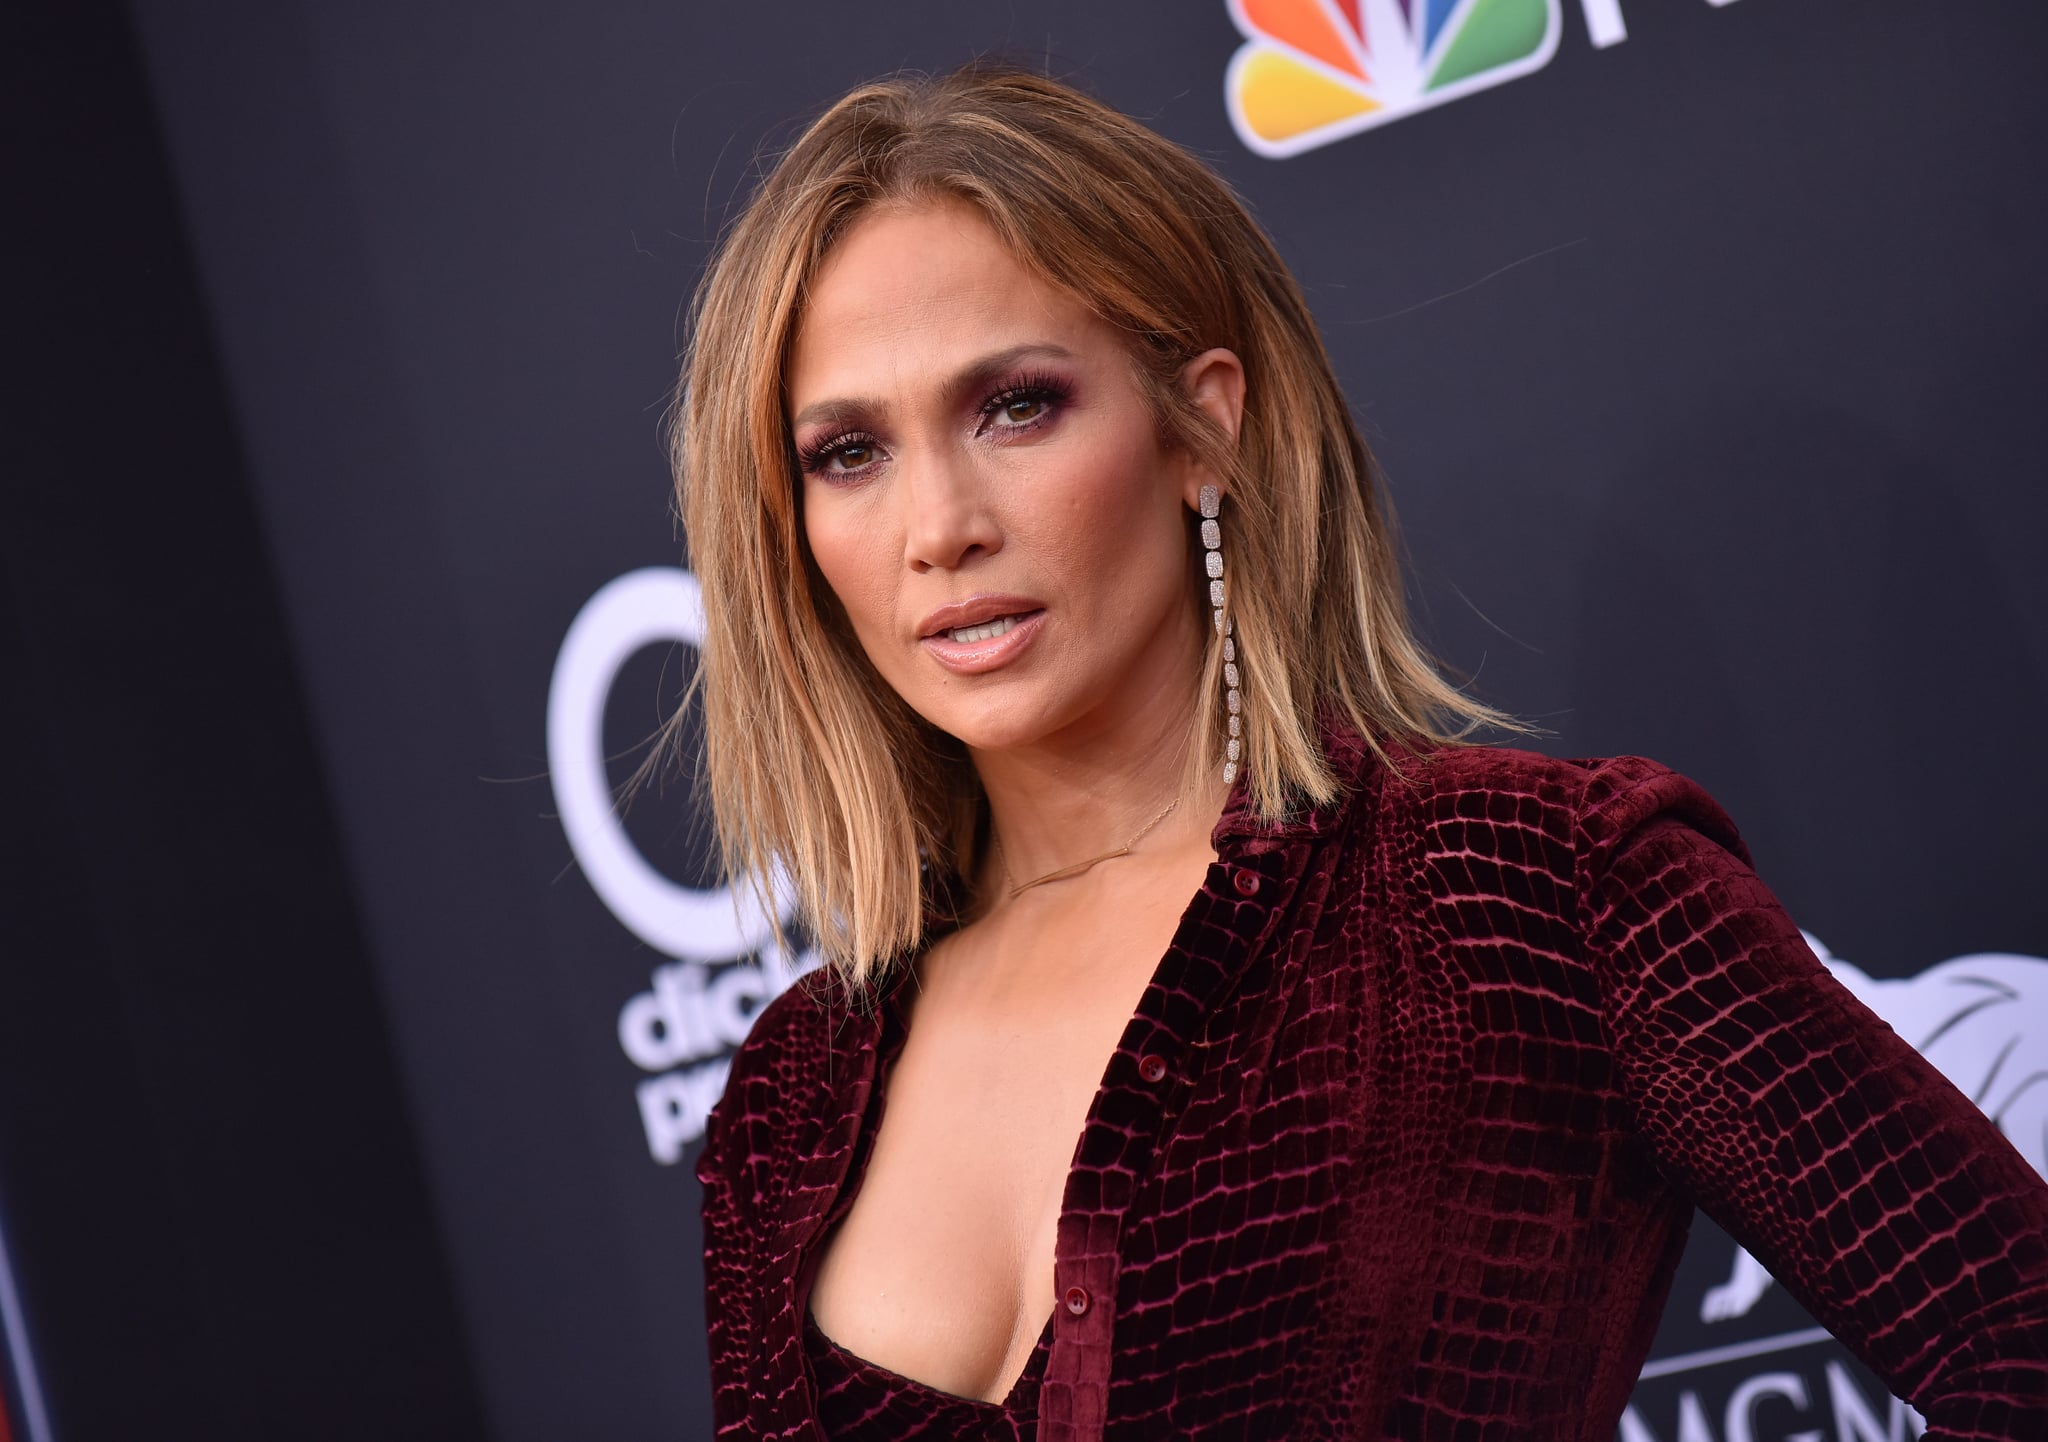 Singer Jennifer Lopez attends the 2018 Billboard Music Awards 2018 at the MGM Grand Resort International on May 20, 2018, in Las Vegas, Nevada (Photo by LISA O'CONNOR / AFP)        (Photo credit should read LISA O'CONNOR/AFP/Getty Images)